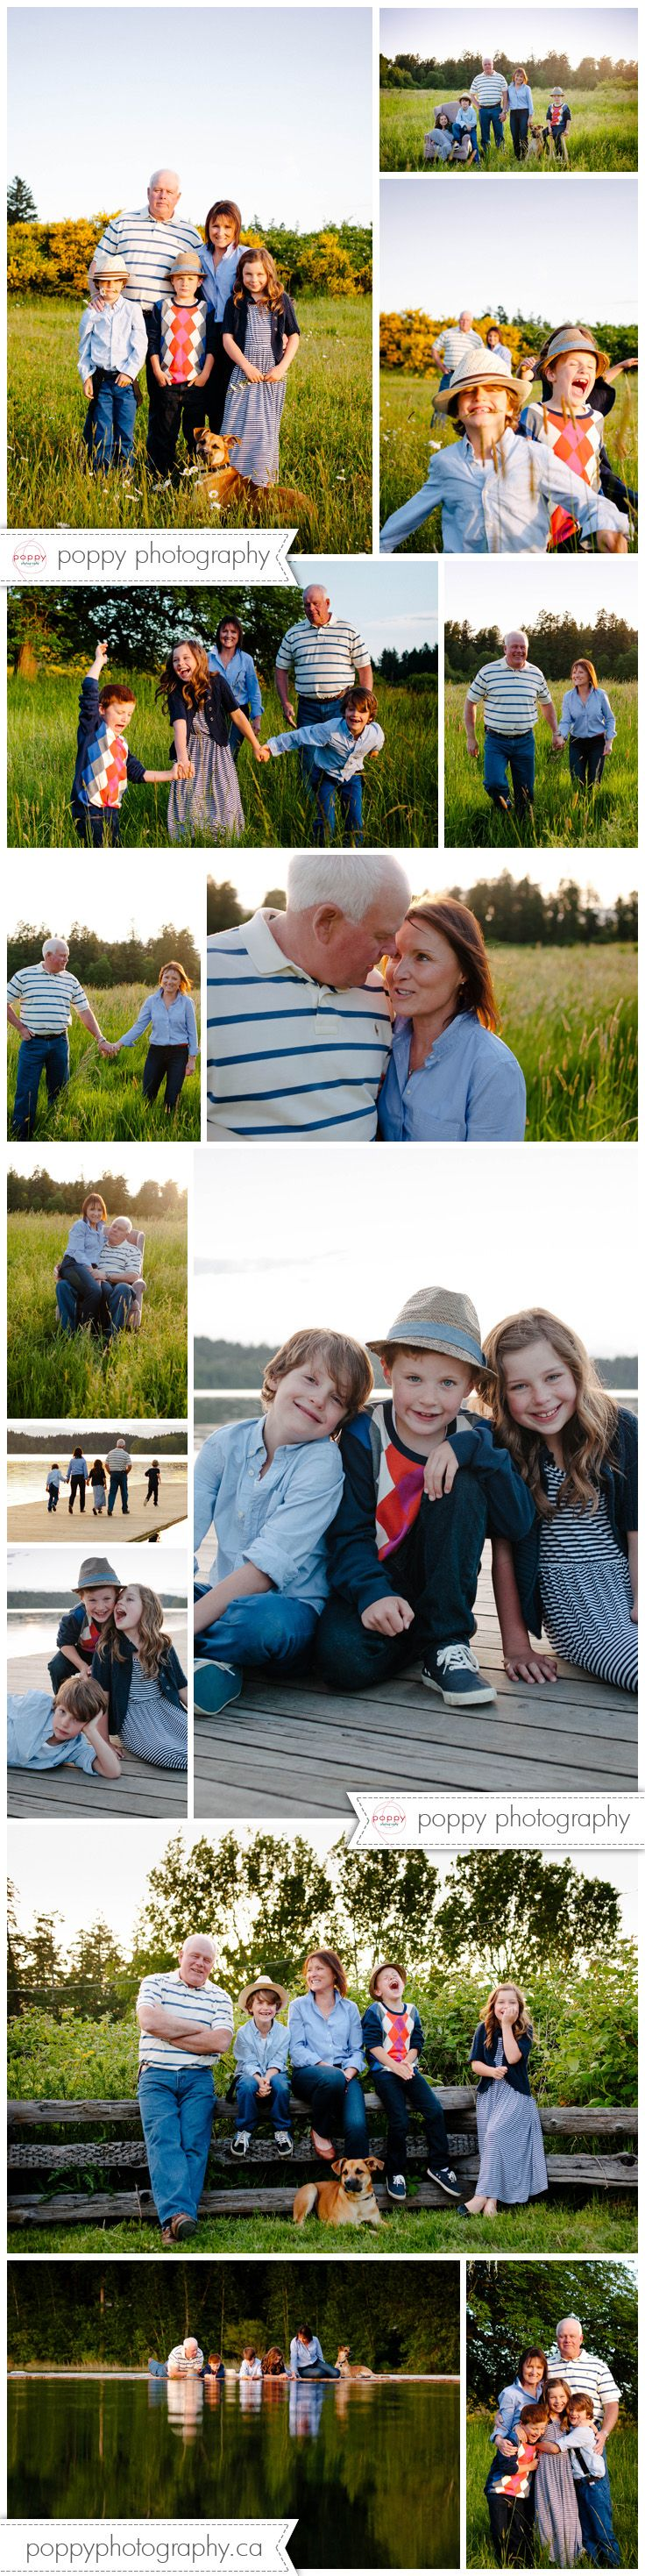 grandparents and their grandkids lifestyle family photography